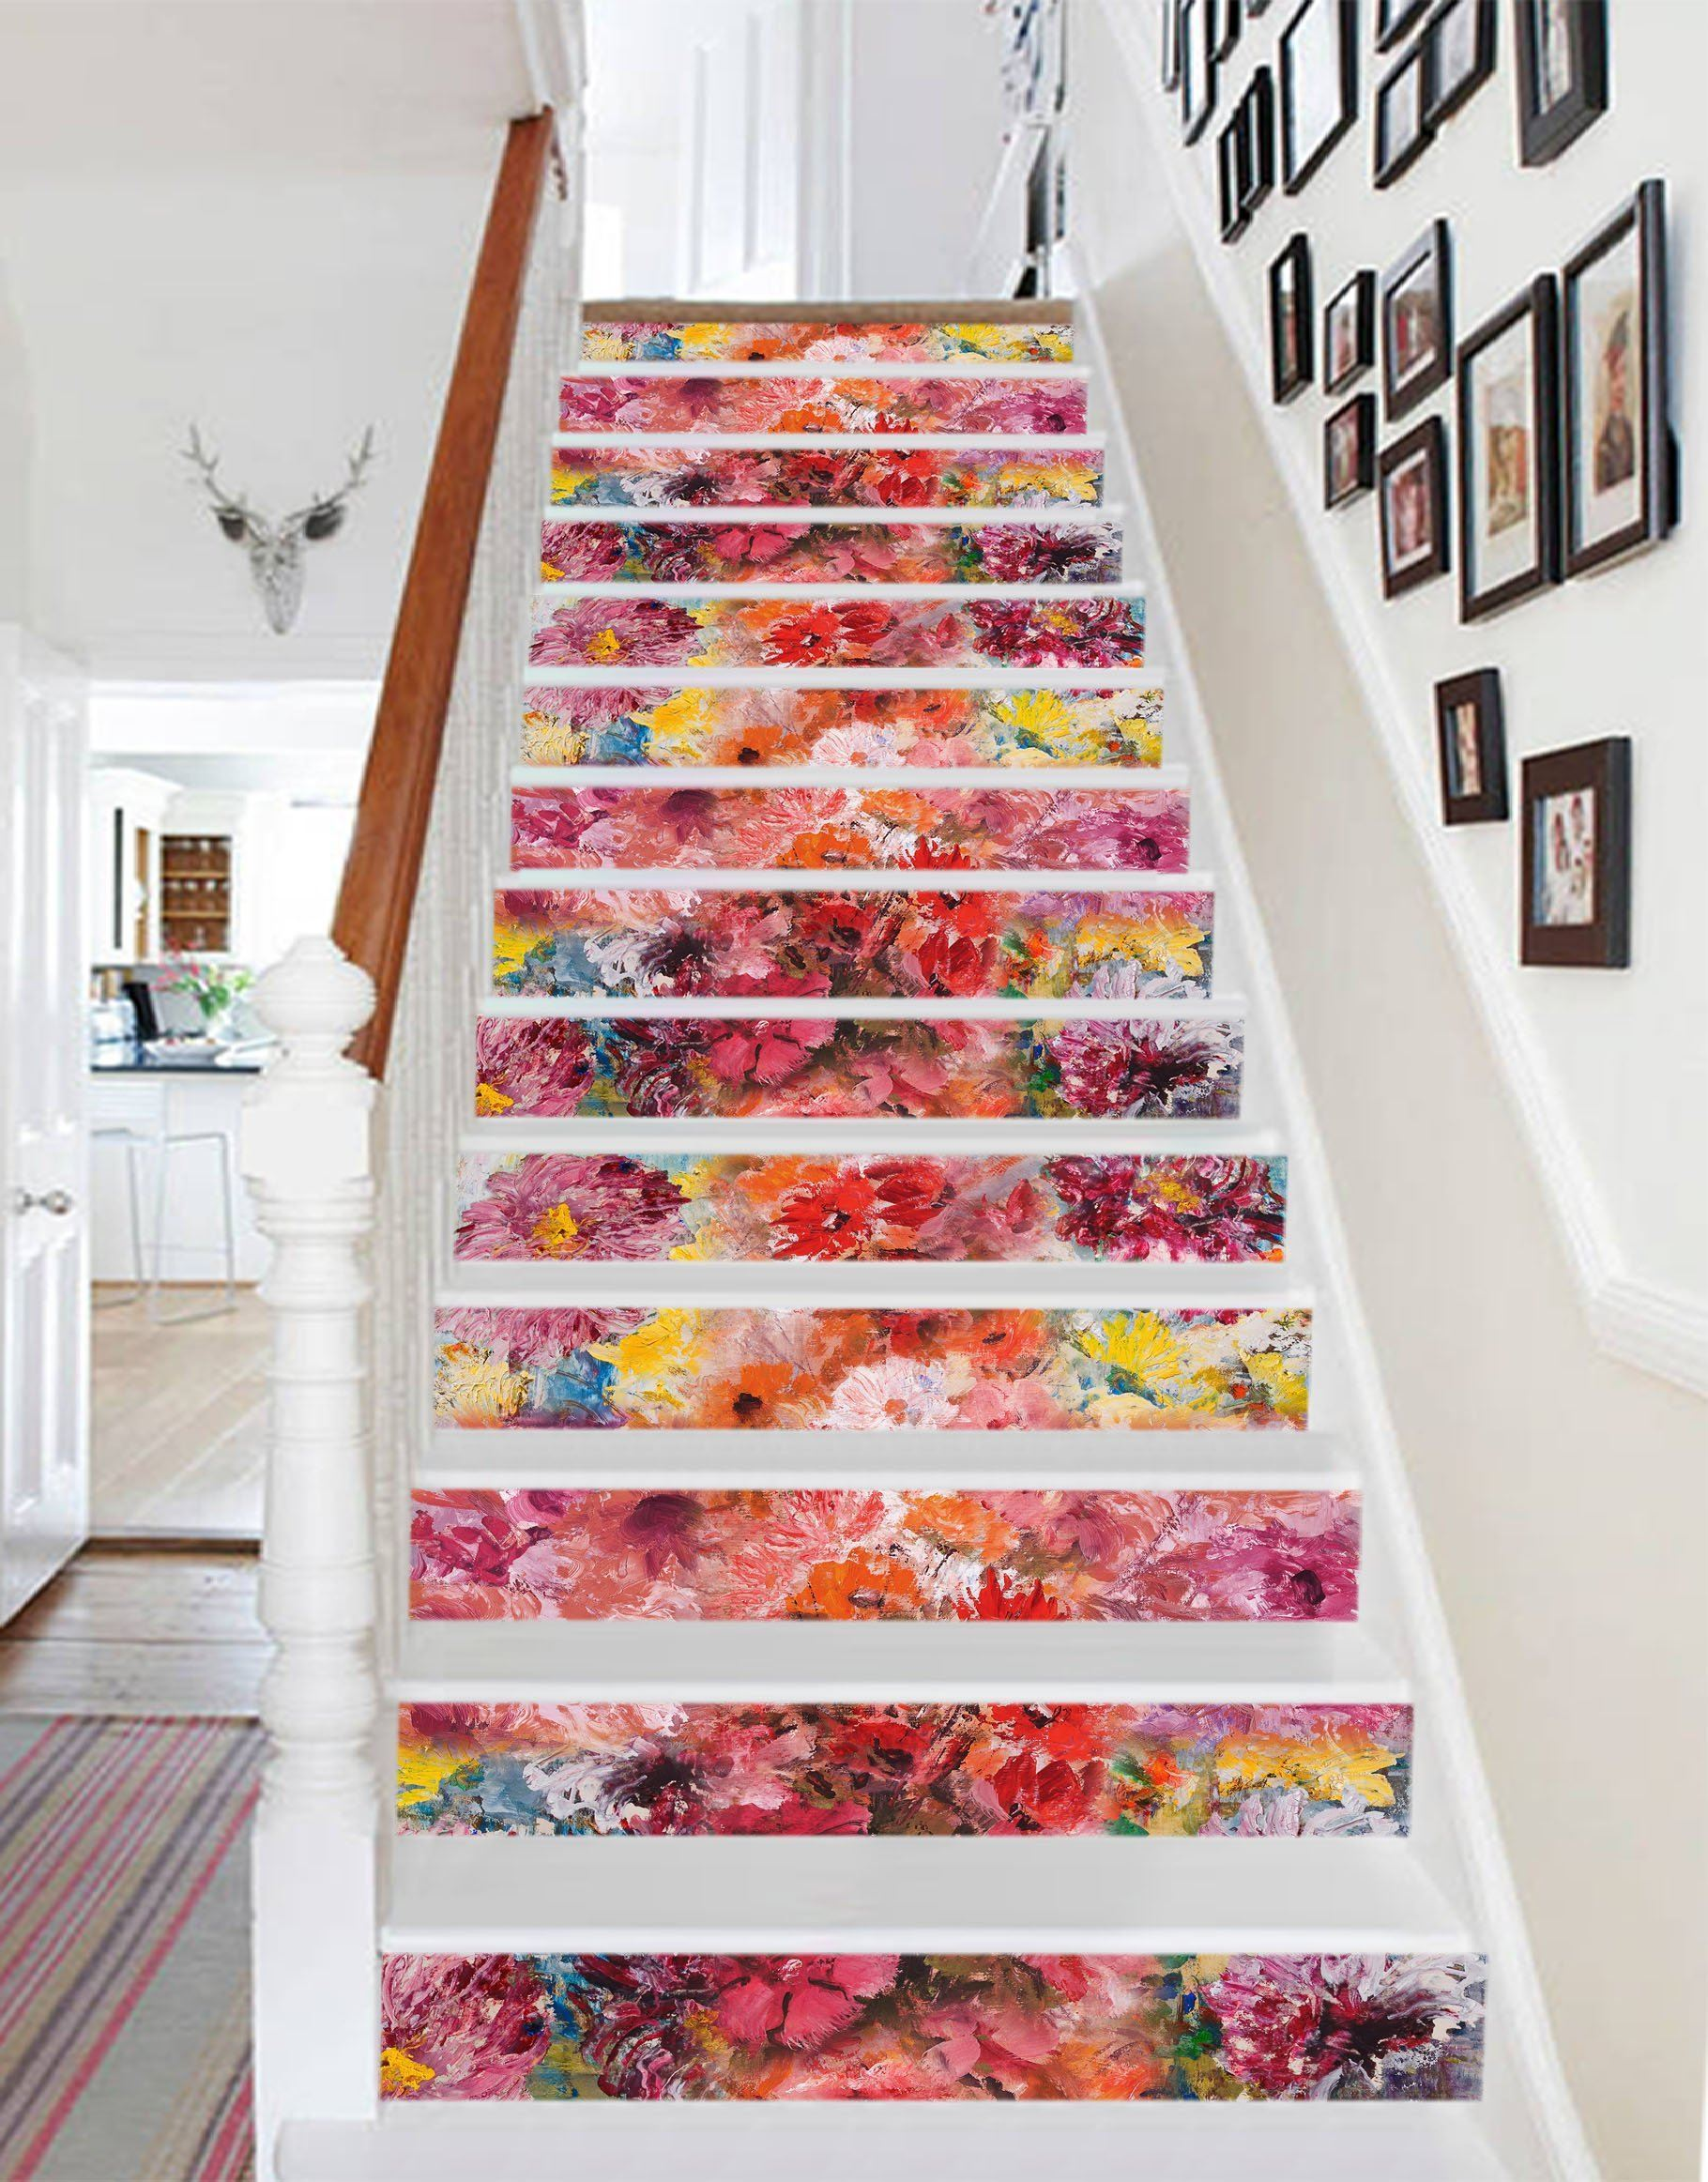 3D Flowers 721 Stair Risers Wallpaper AJ Wallpaper